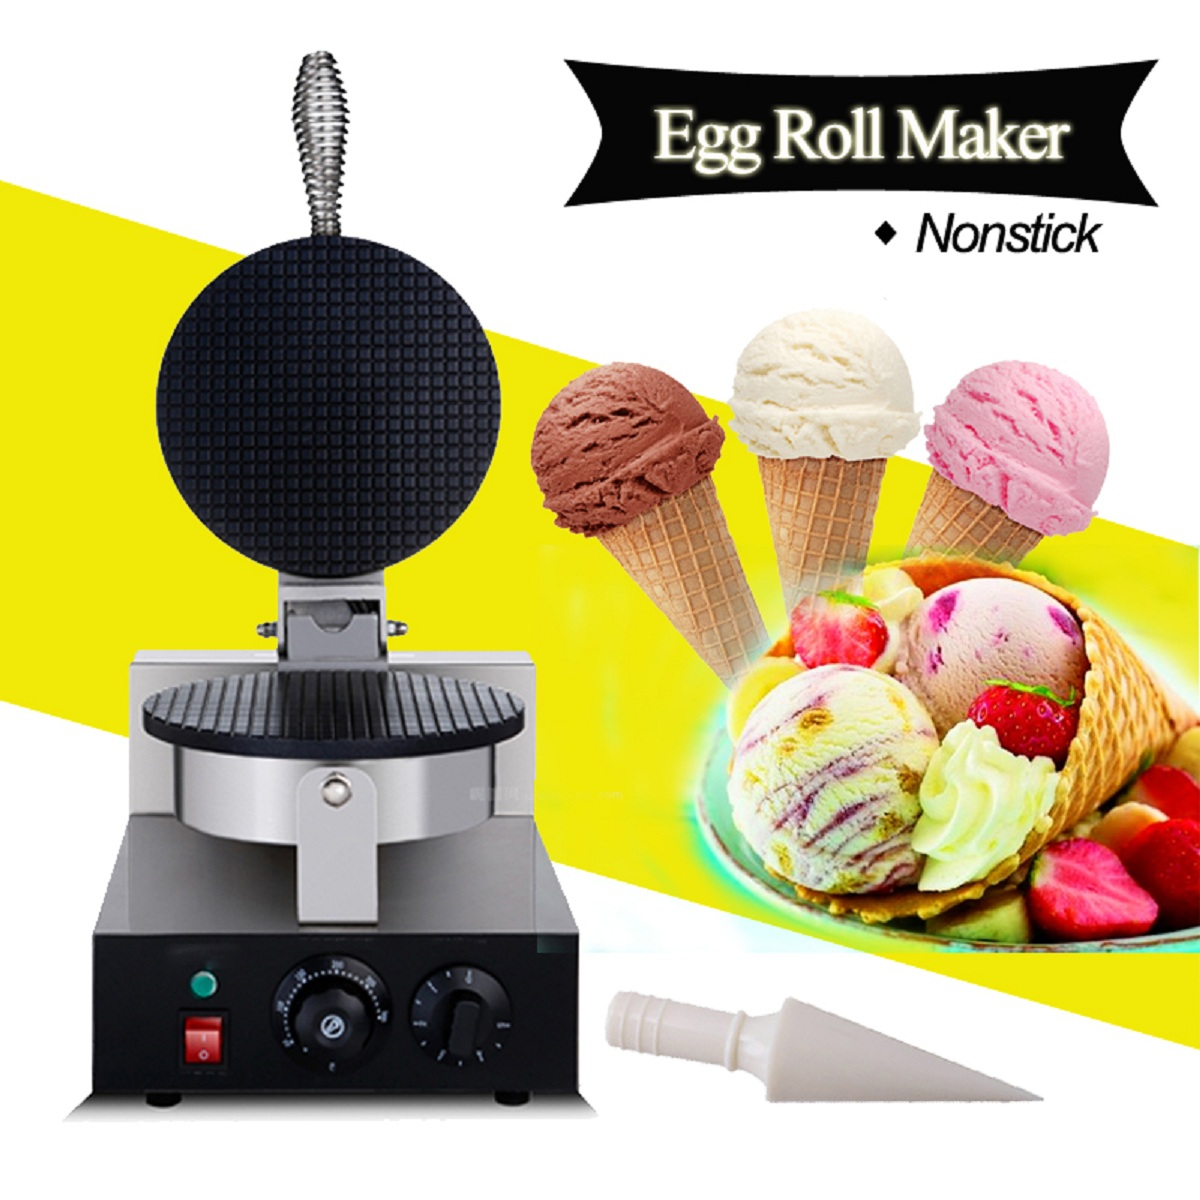 AC 110V/220V Electric Machine Waffle Cone Maker Baker Commercial Nonstick Regular Ice Cream Maker For Cooking Baking